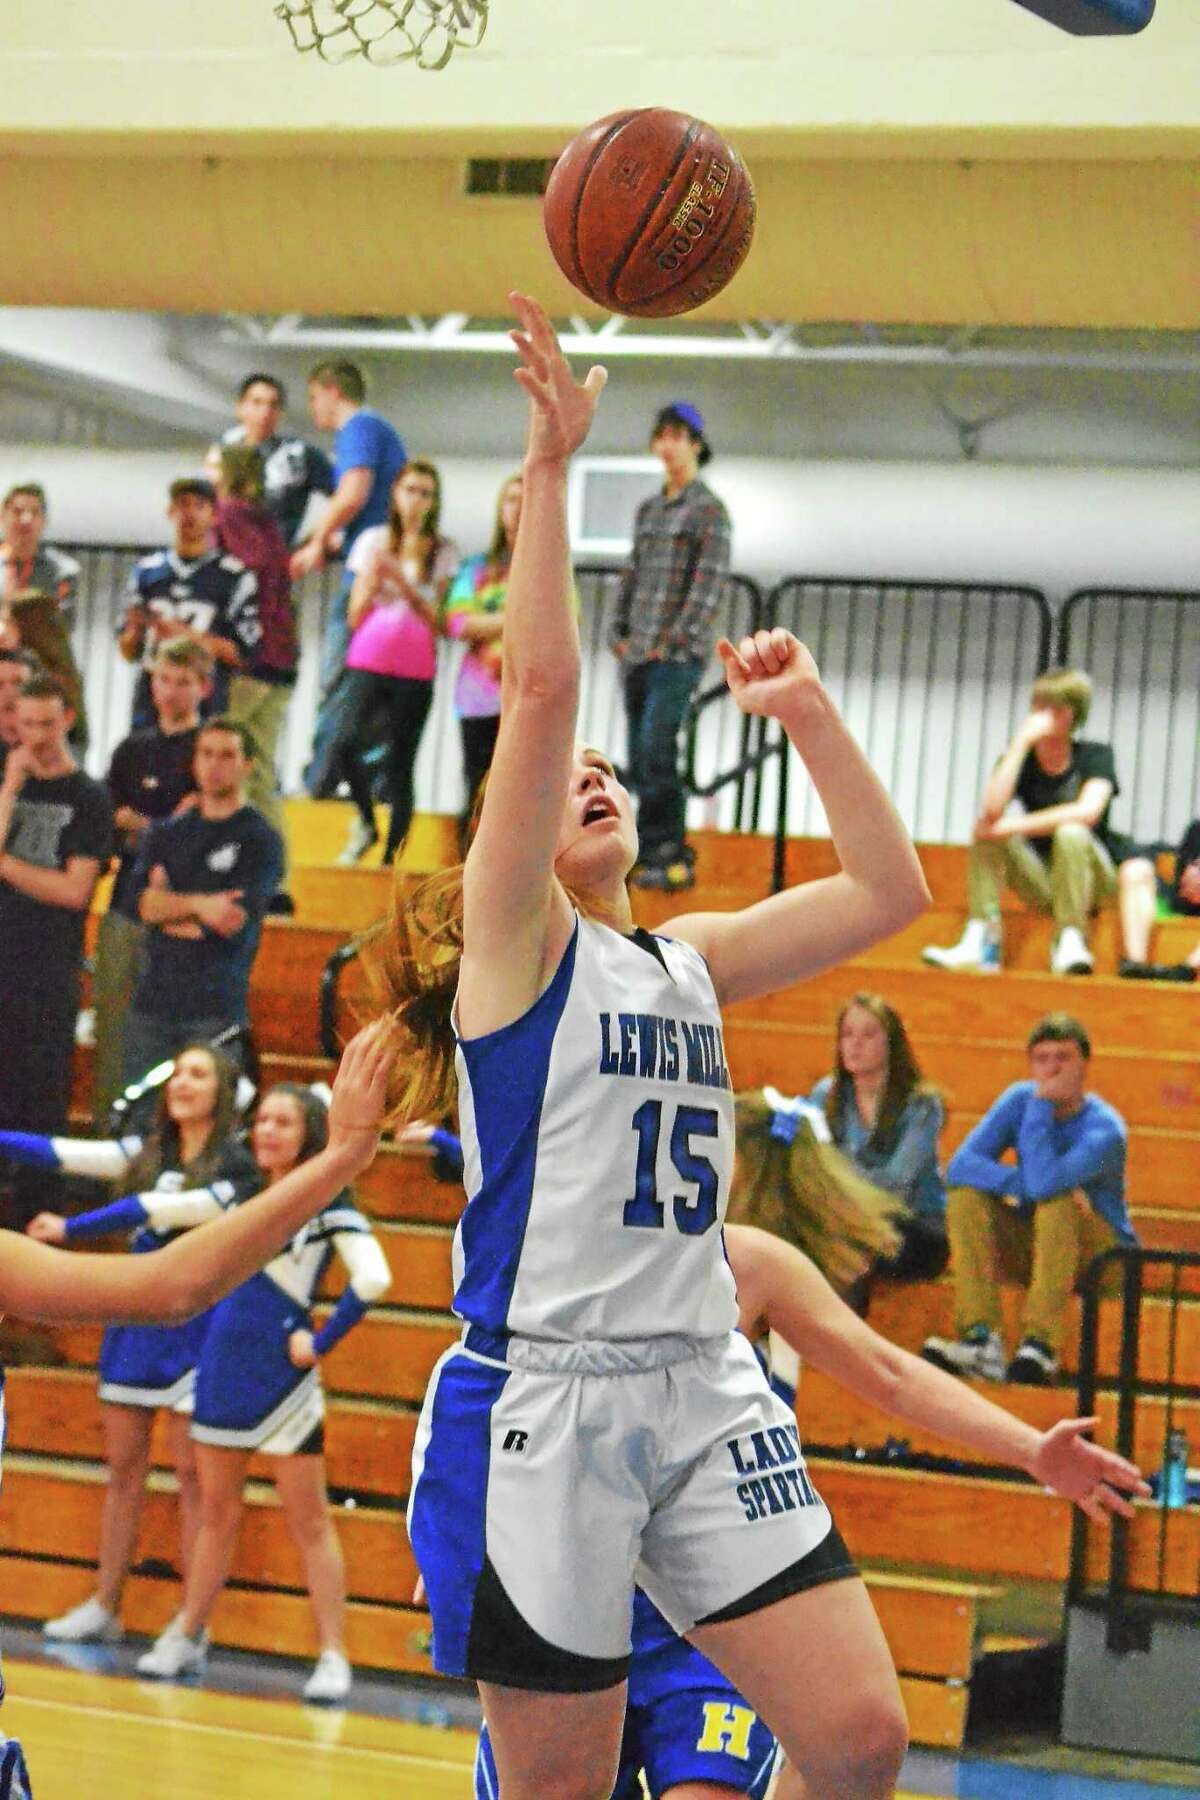 Lewis Mills' Teagan Dunn puts up a layup in the Spartans 49-41 win over Housatonic.